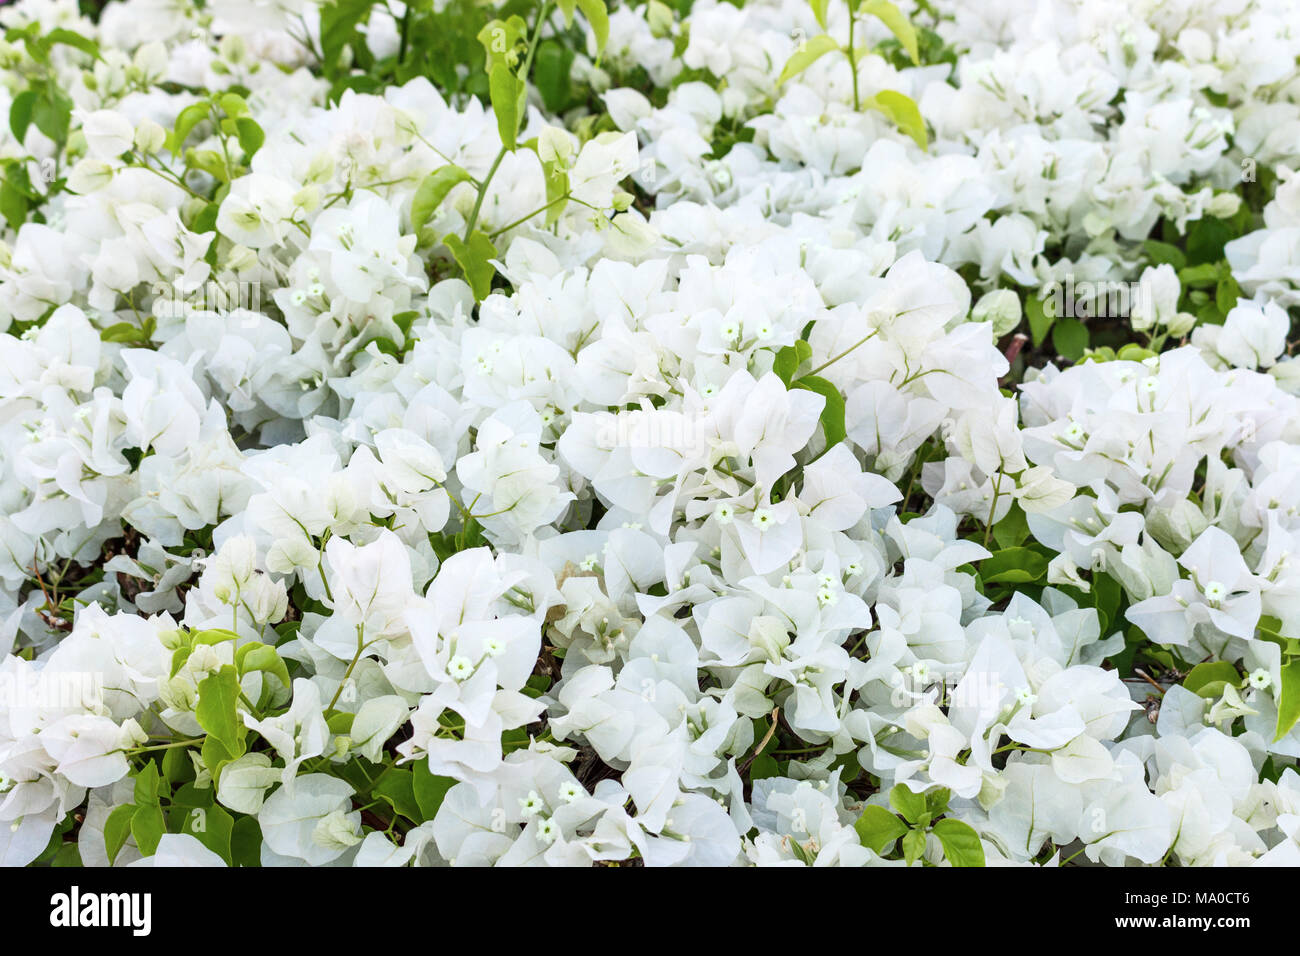 White small flower background gypsophila paniculata or baby breath white small flower background gypsophila paniculata or baby breath flowers mightylinksfo